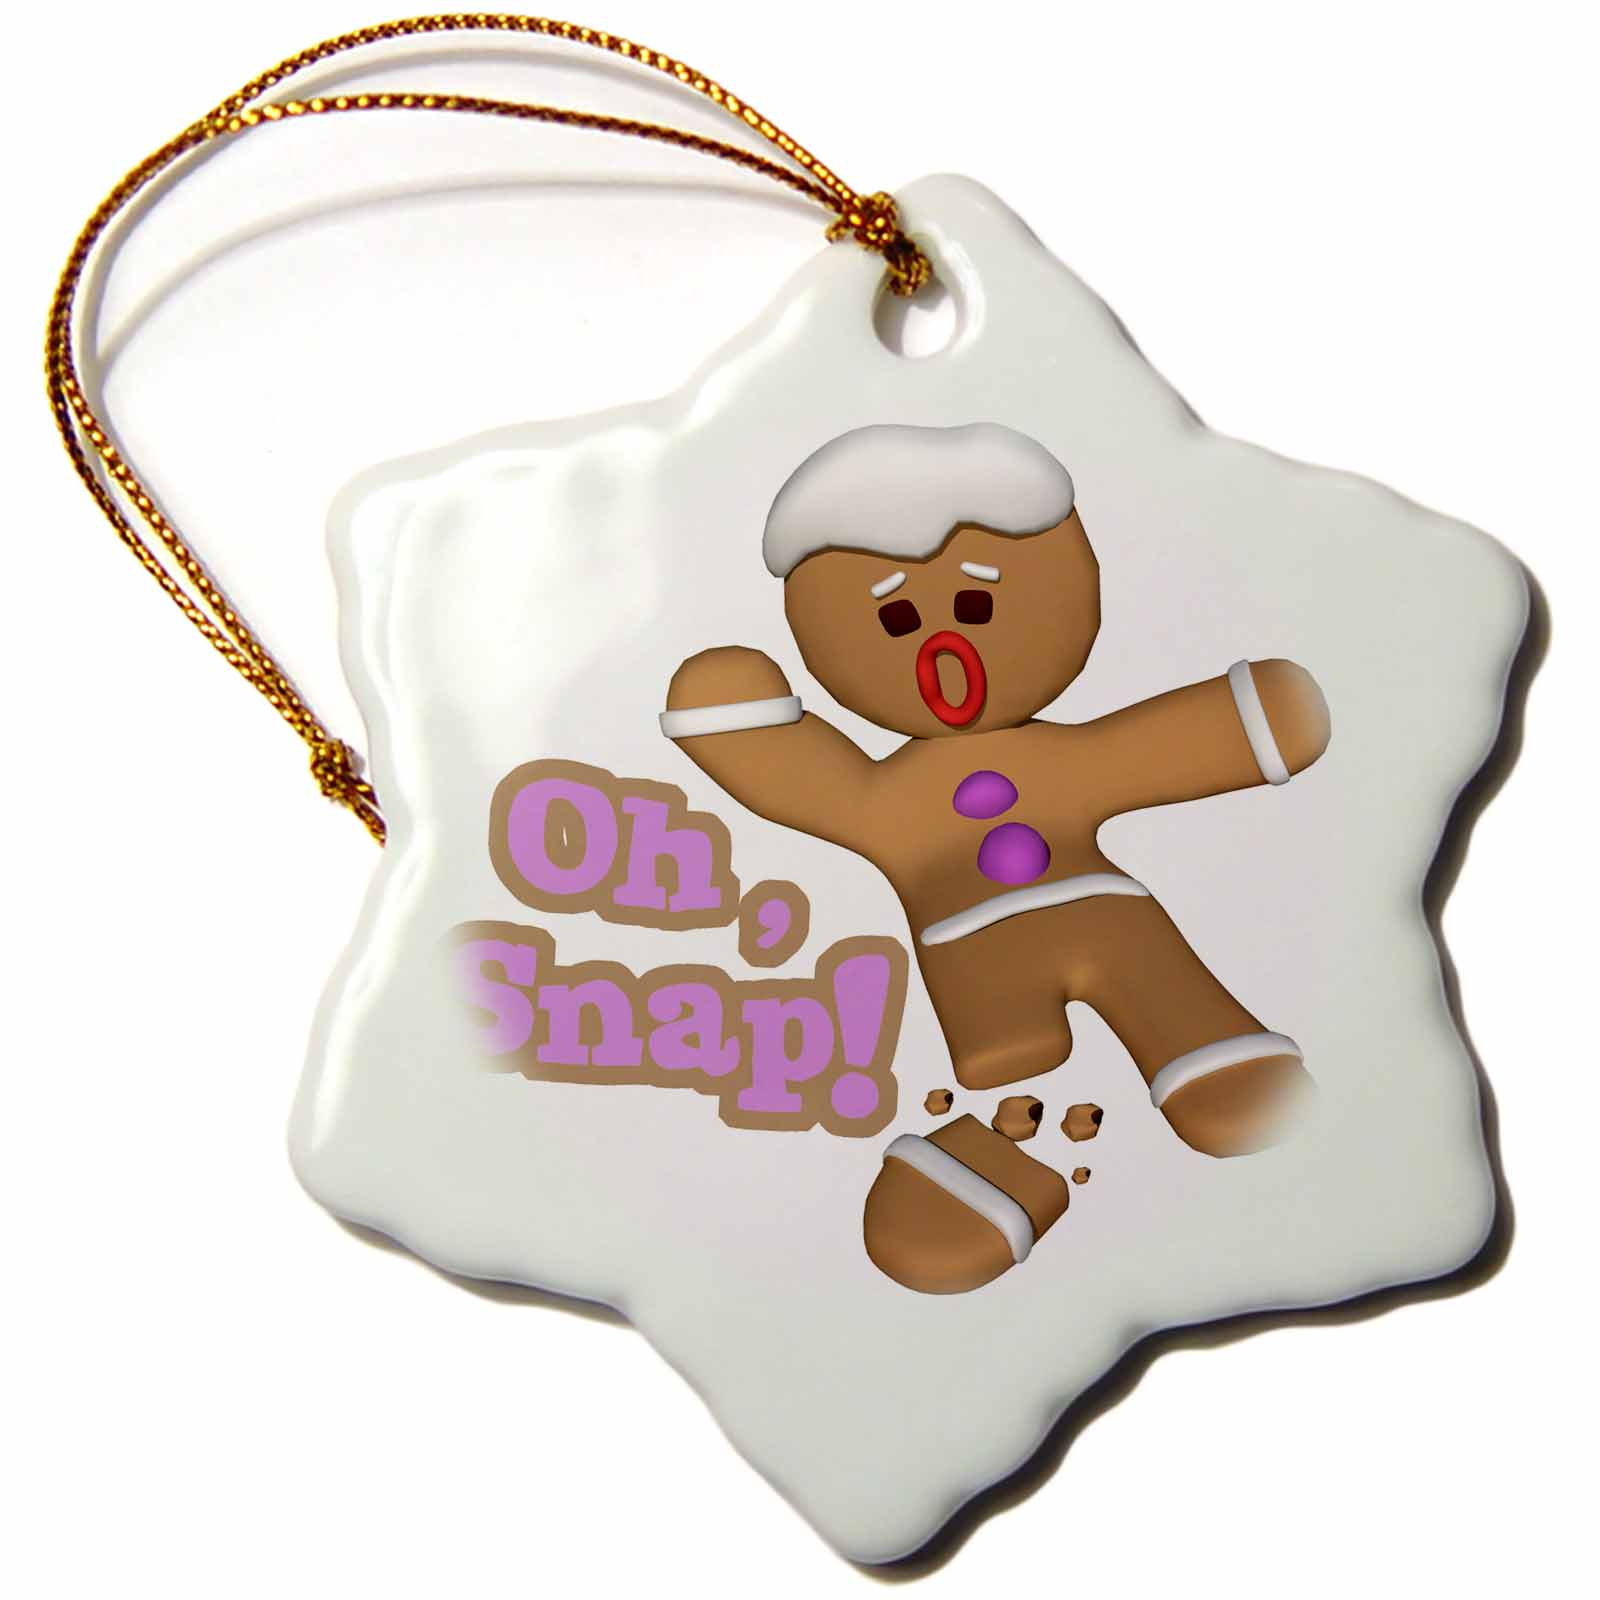 3dRose Funny Oh Snap Broken Snapped Gingerbread Man Cookie Holiday Christmas Humor, Snowflake Ornament, Porcelain, 3-inch